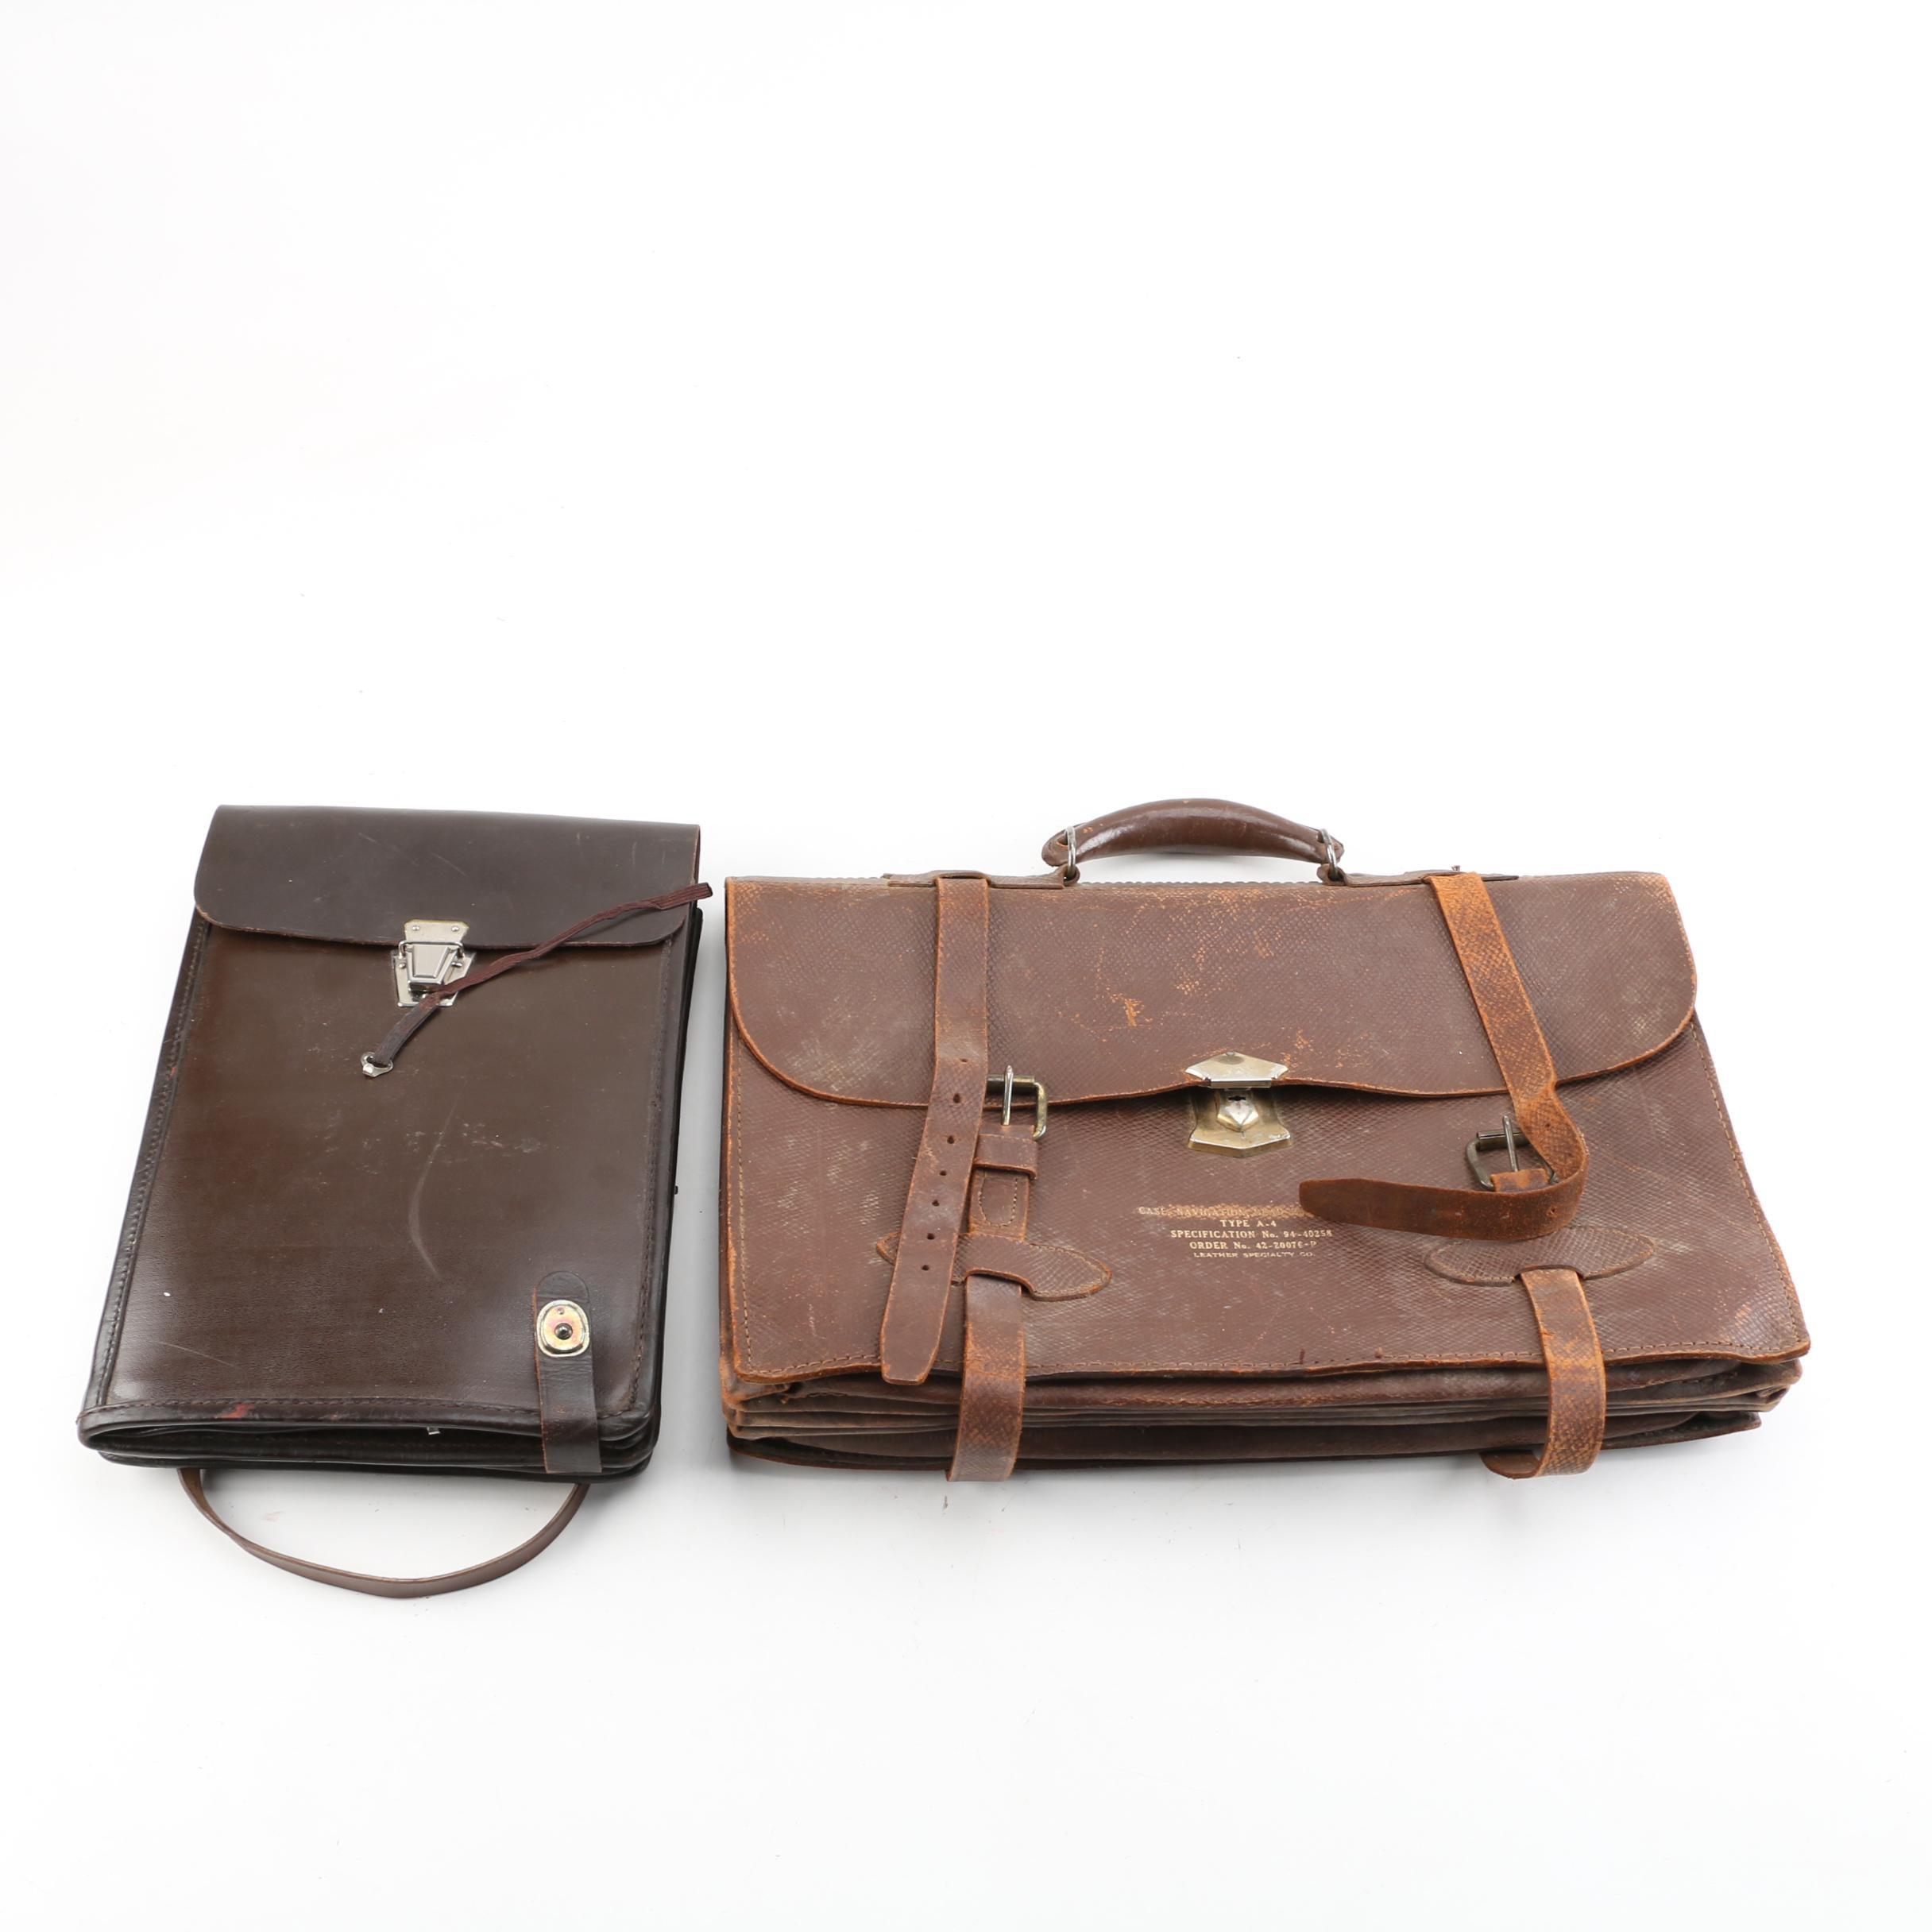 WWII USAAF Navigator Type A4 Leather Briefcase and Document Case